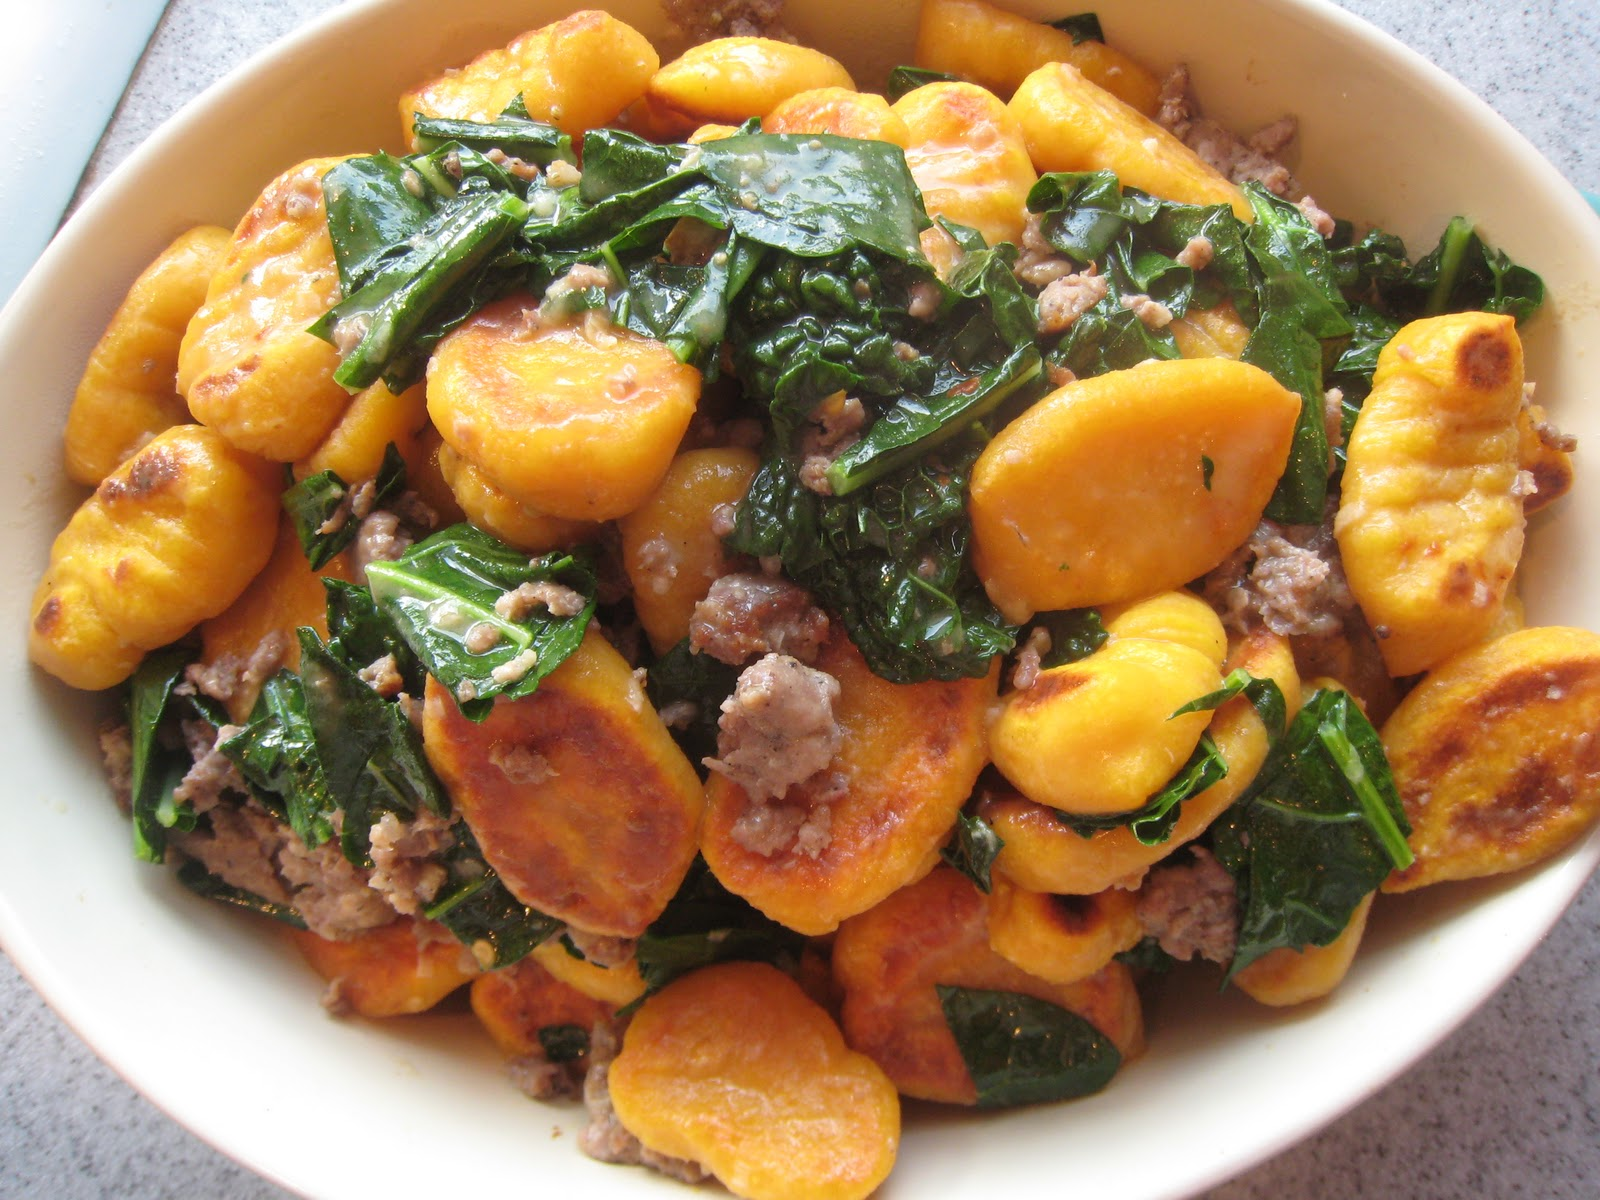 ... to My Family's Heart: Butternut Squash Gnocchi with Sausage and Kale